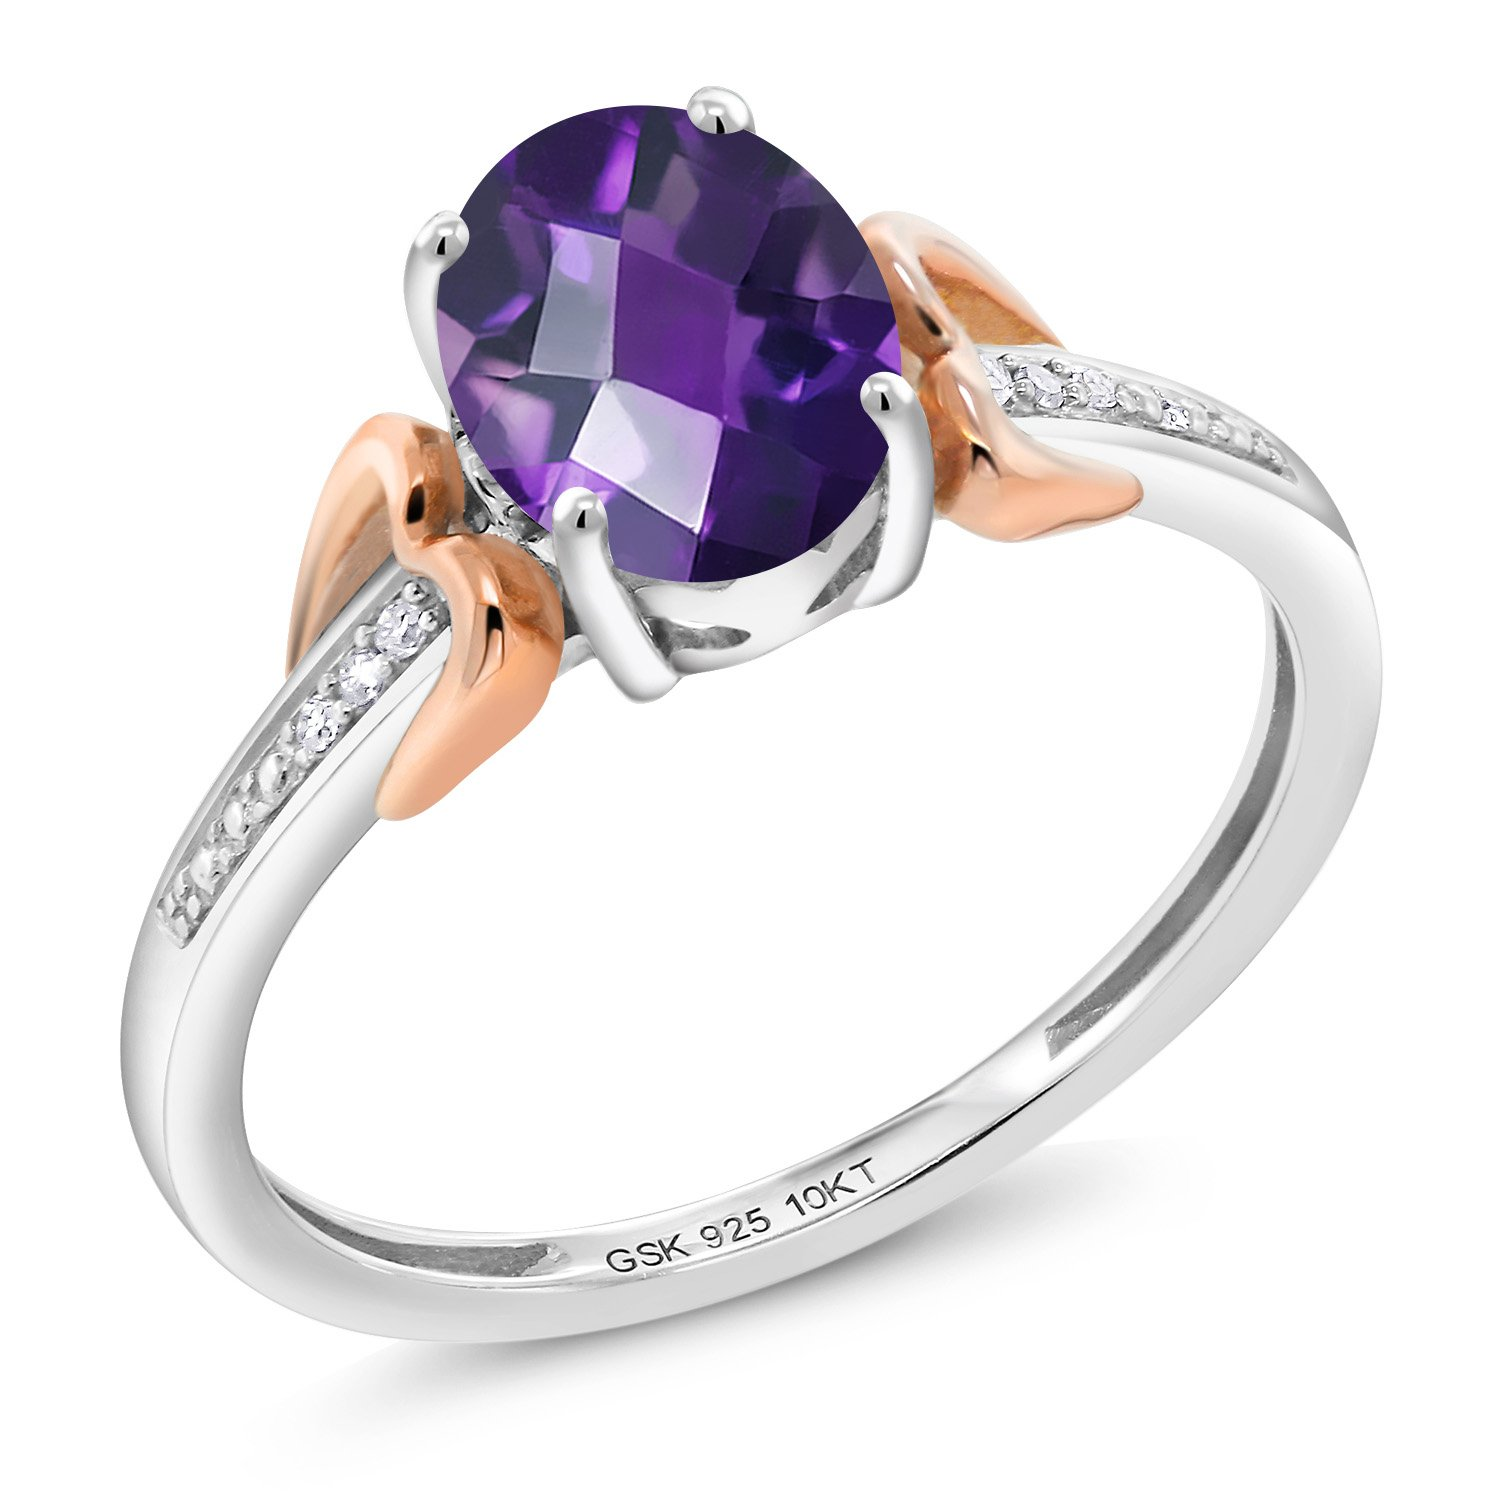 1.00 Ct Oval Checkerboard Purple Amethyst 925 Silver With Diamond 10K Rose Gold Ring (Size 6)